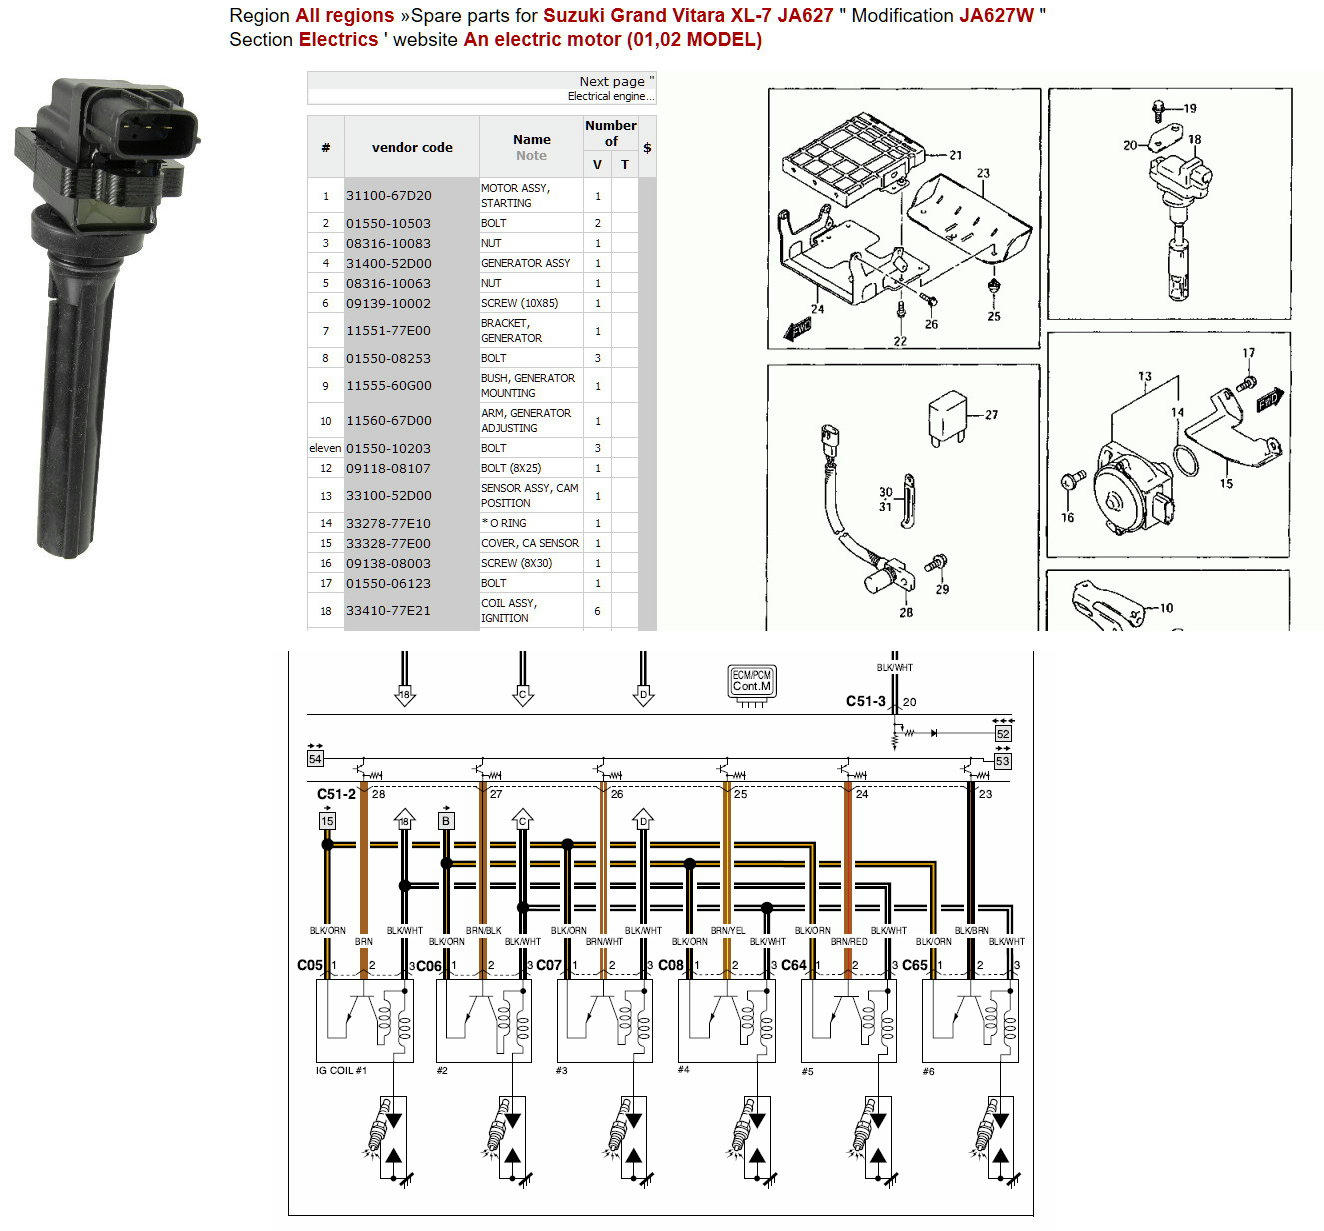 hight resolution of 2007 suzuki xl7 ignition wiring diagram html imageresizertool com 2007 chevrolet uplander transmission 2007 chevrolet uplander transmission